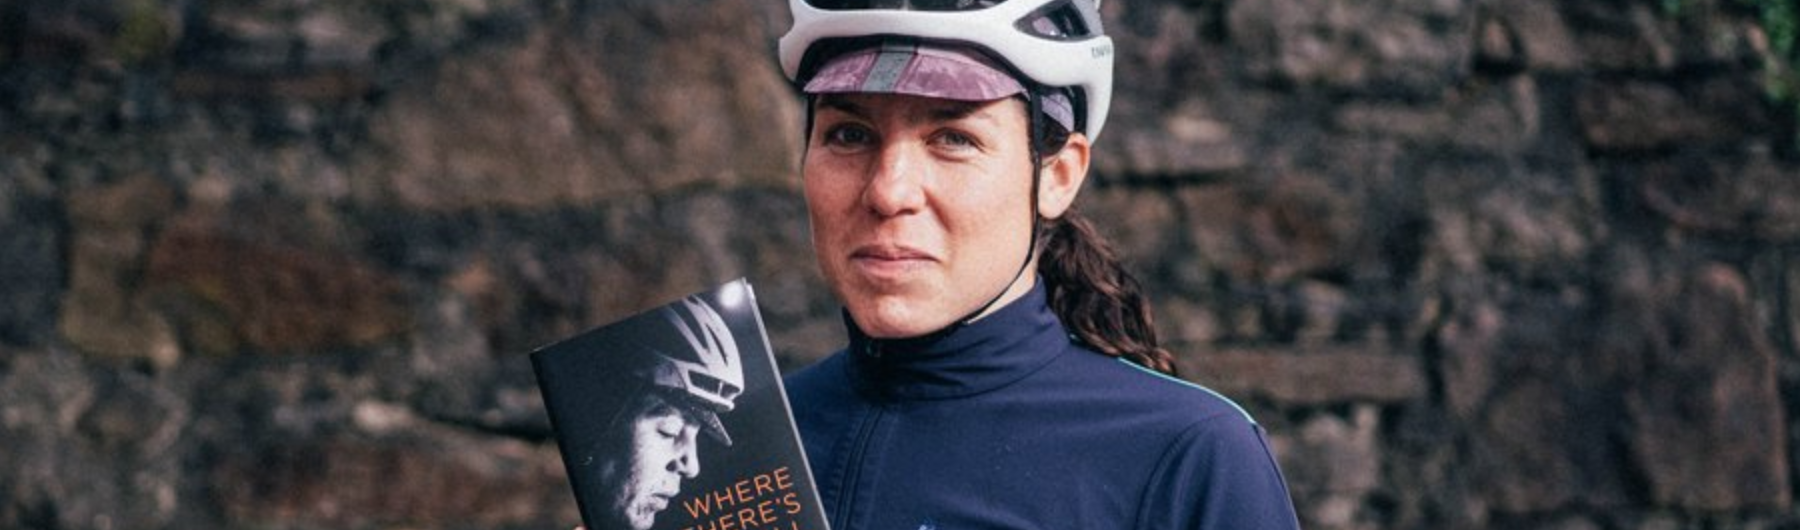 Emily Chapell 'Where There's A Will' Book Tour